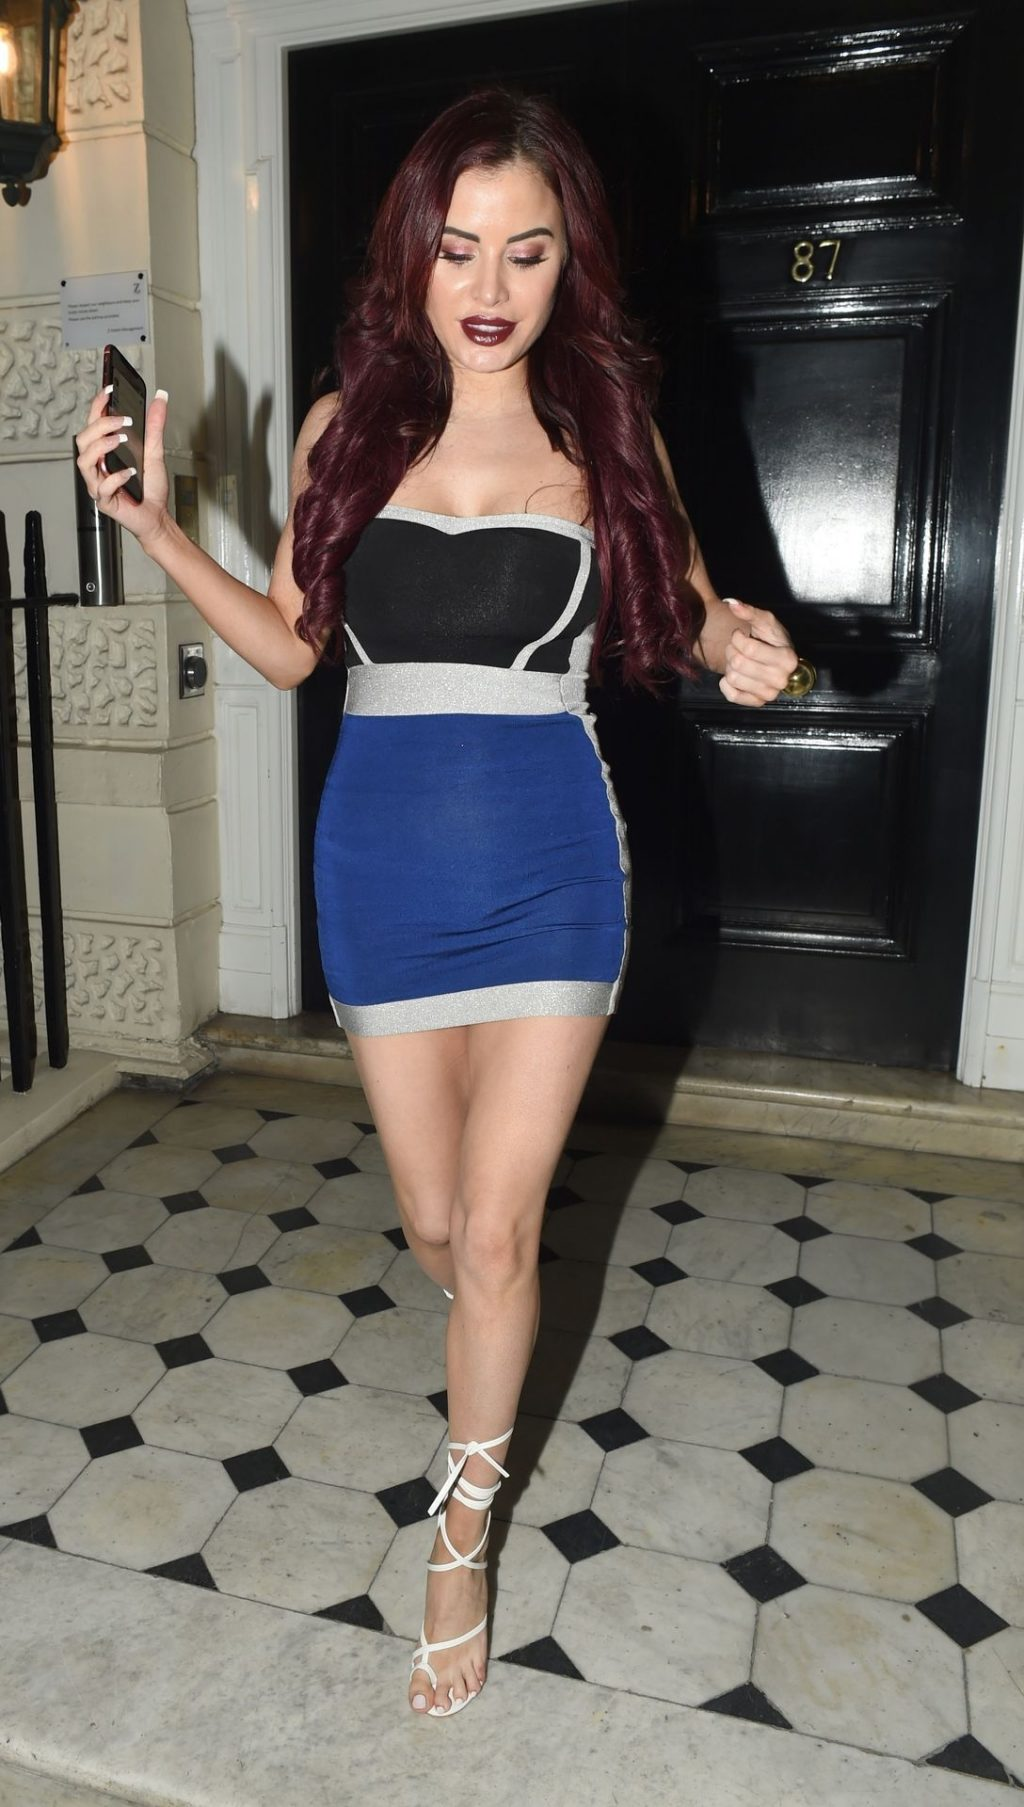 Carla Howe Getting Cheeky On a Cold Night Out in London (47 Photos)